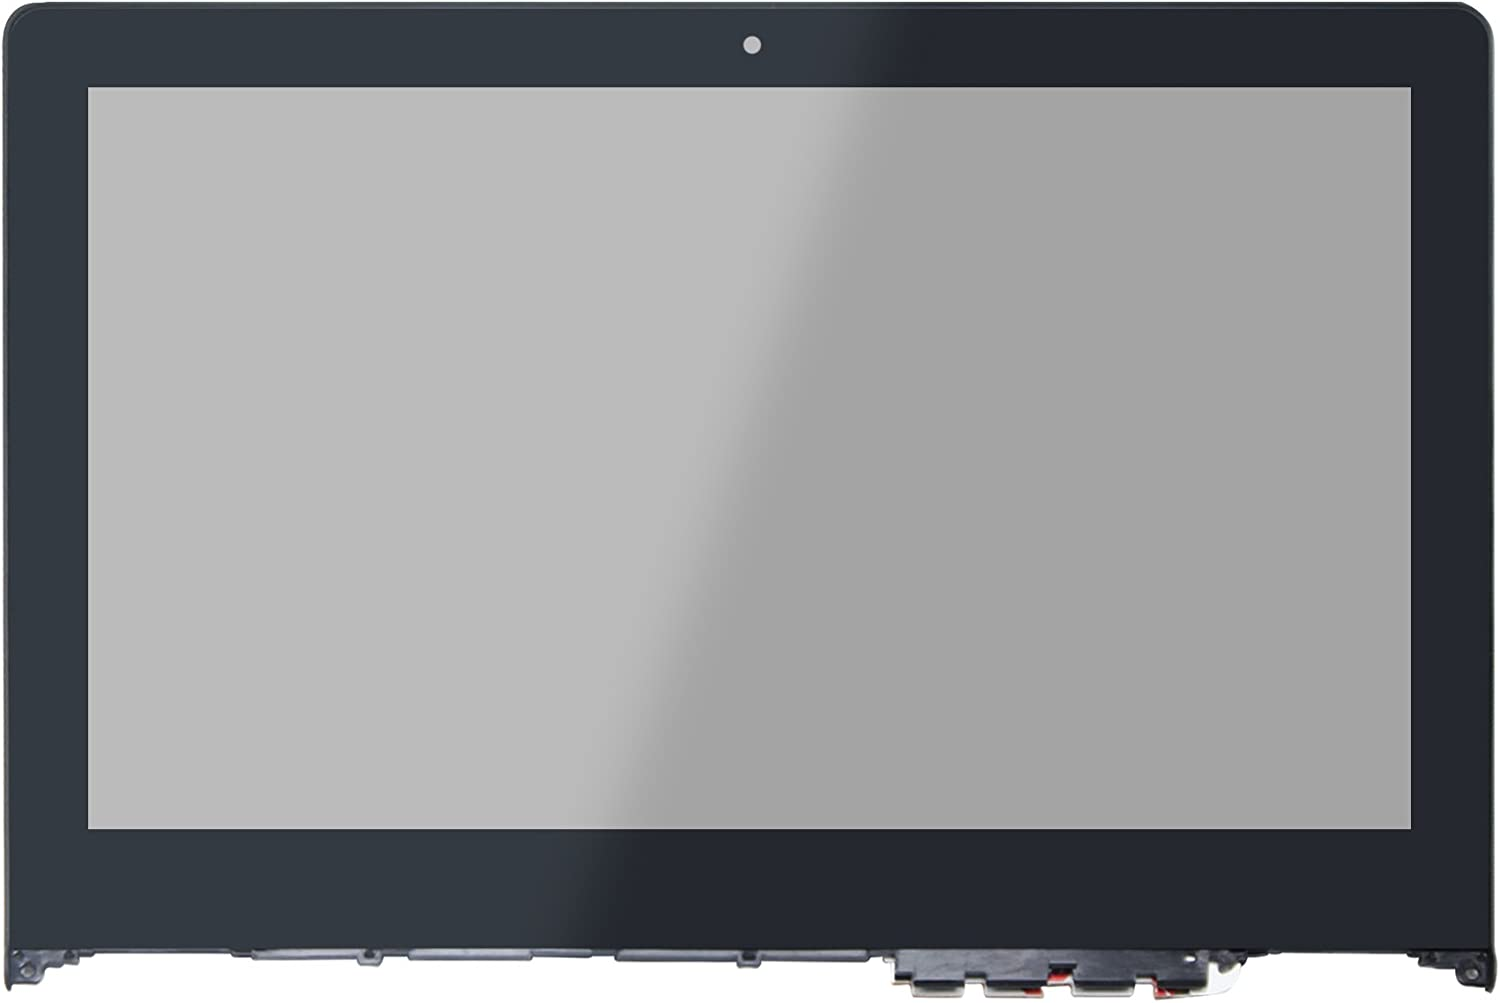 LCDOLED Compatible 11.6 inch FullHD 1080P IPS N116HSE-EBC LED LCD Display Touch Screen Digitizer Assembly + Bezel Replacement for Lenovo Yoga 700 700-11ISK 80QE 80QE004YUS 80QE004CUS 80QE004BUS etc.